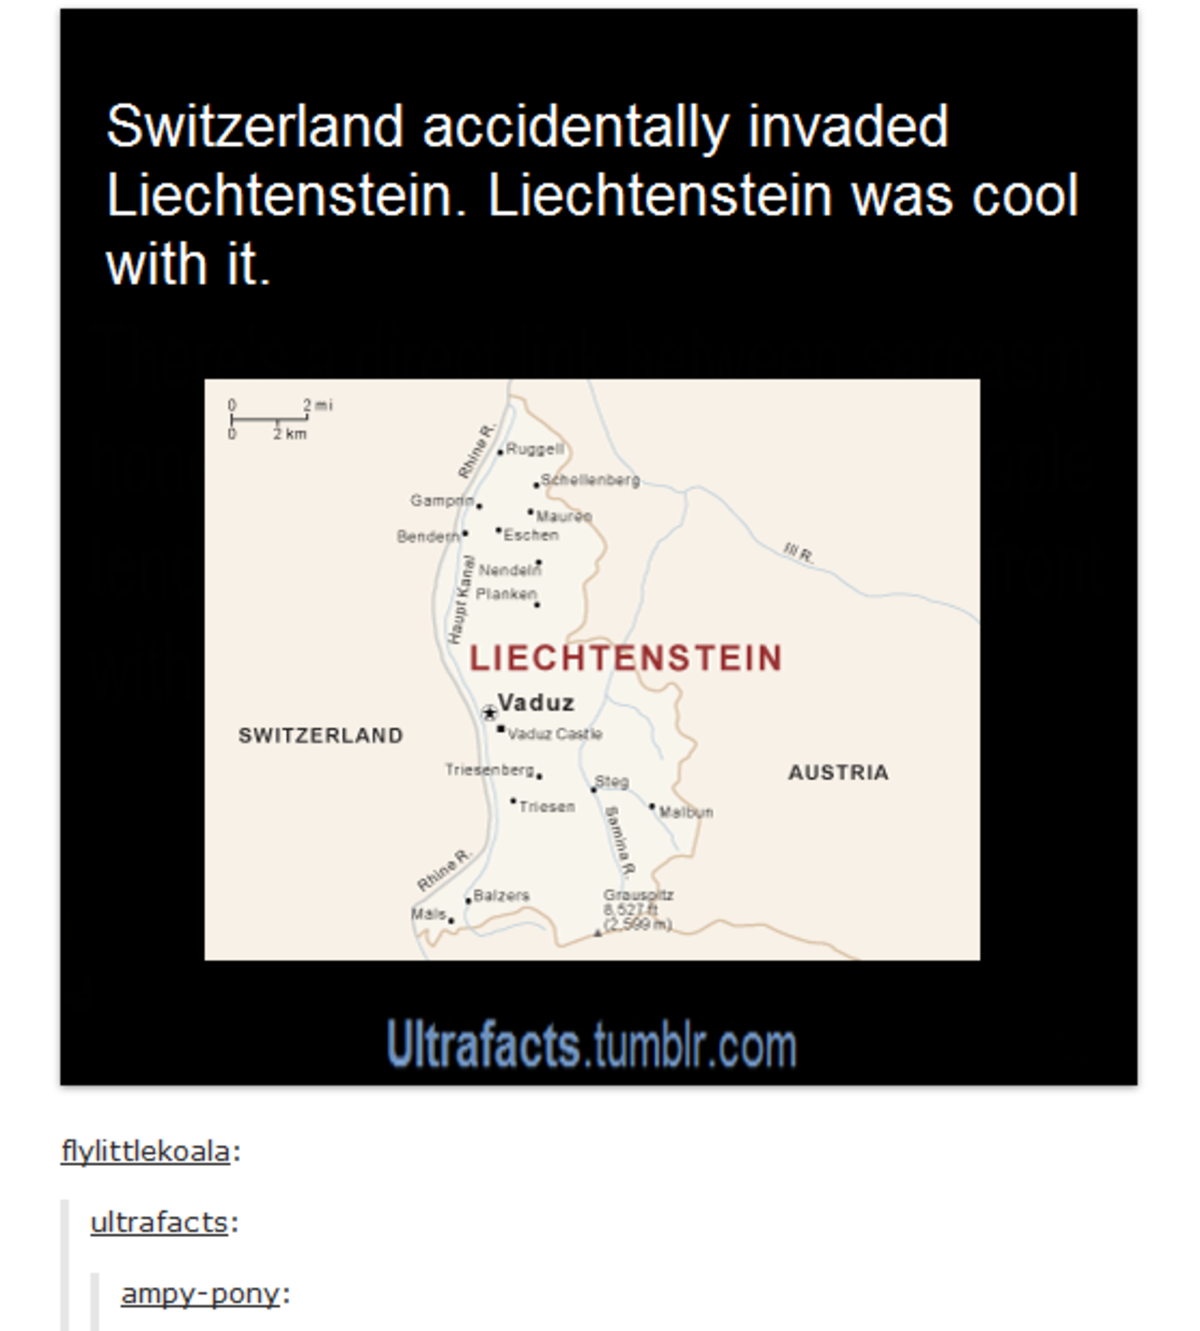 Lichtenstein is a cool name. .. That seems less like an invasion and more like an accidental trespass.